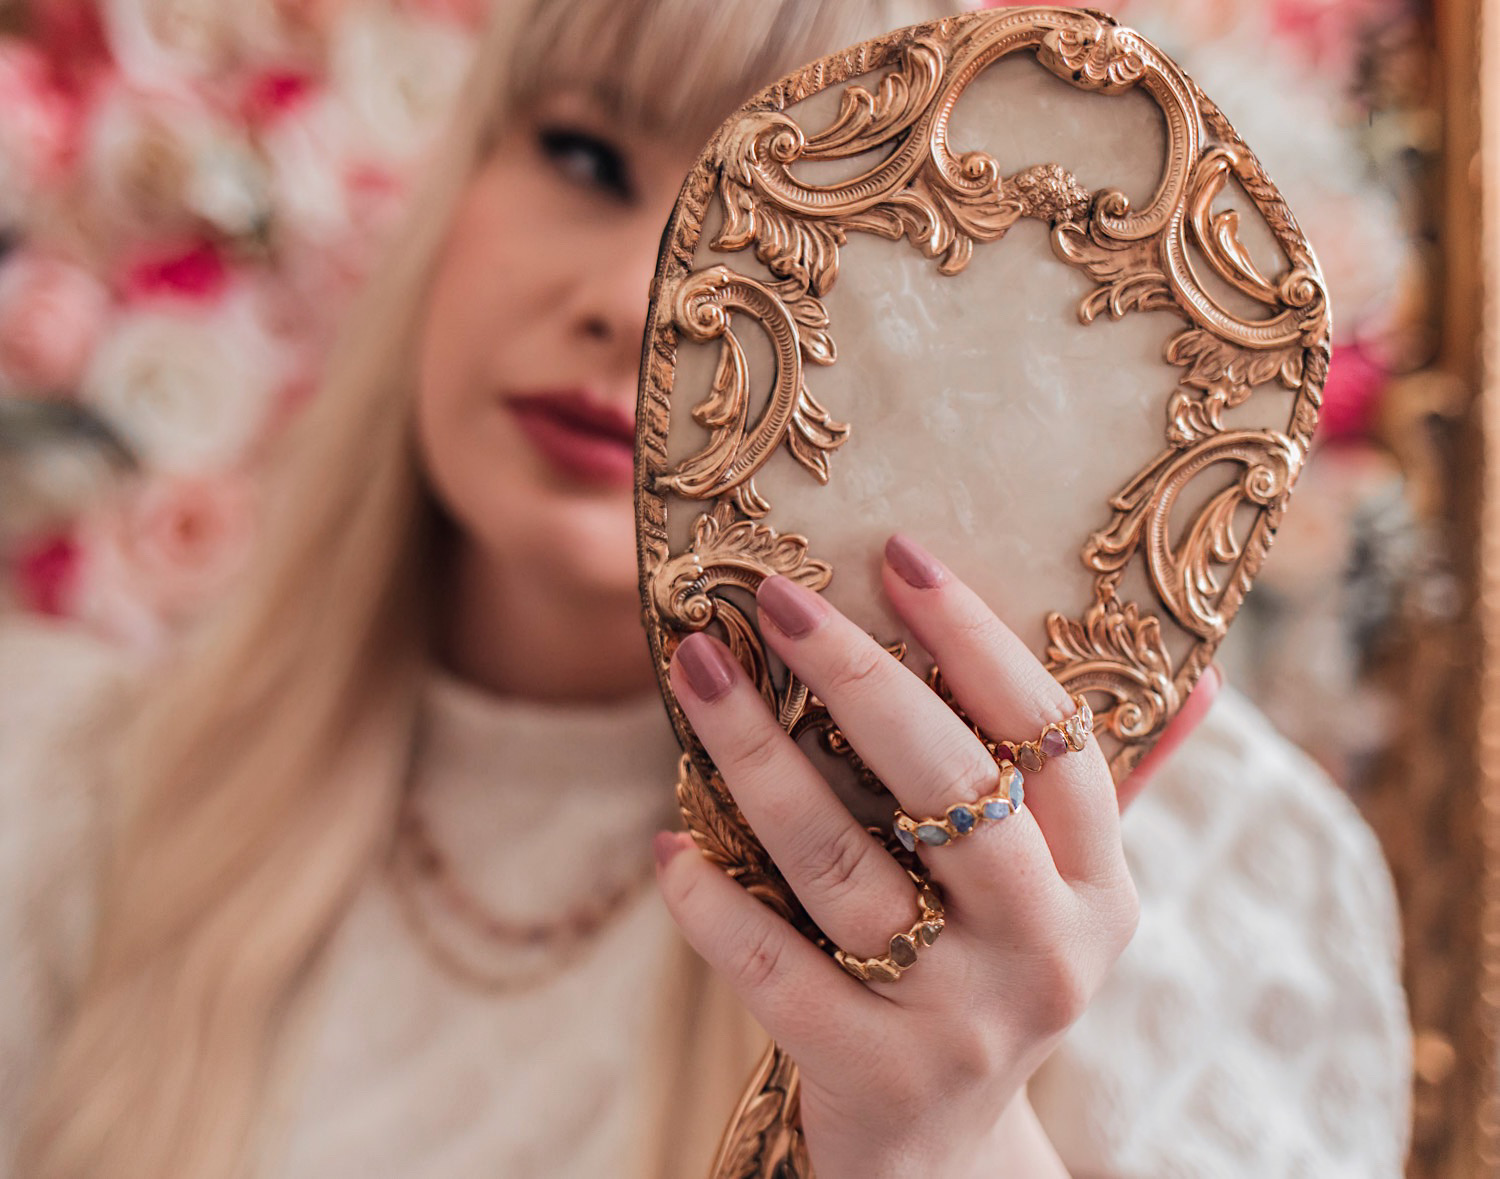 Feminine Fashion Blogger Elizabeth Hugen of Lizzie in Lace shares an honest German Kabirski jewelry review along with gorgeous pastel gemstone rings and necklaces